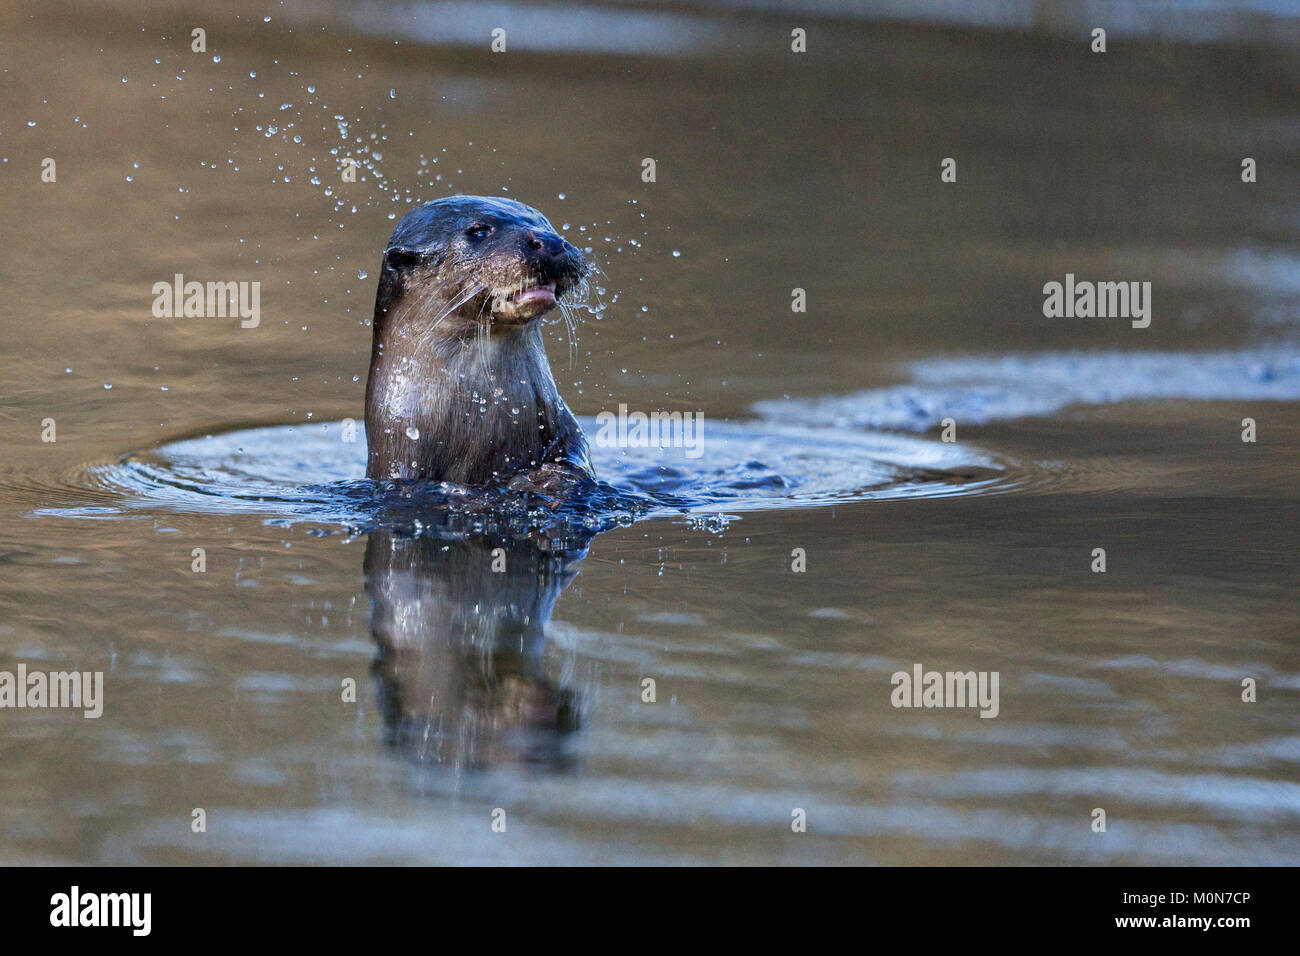 Common Otter (Lutra lutra) - Stock Image